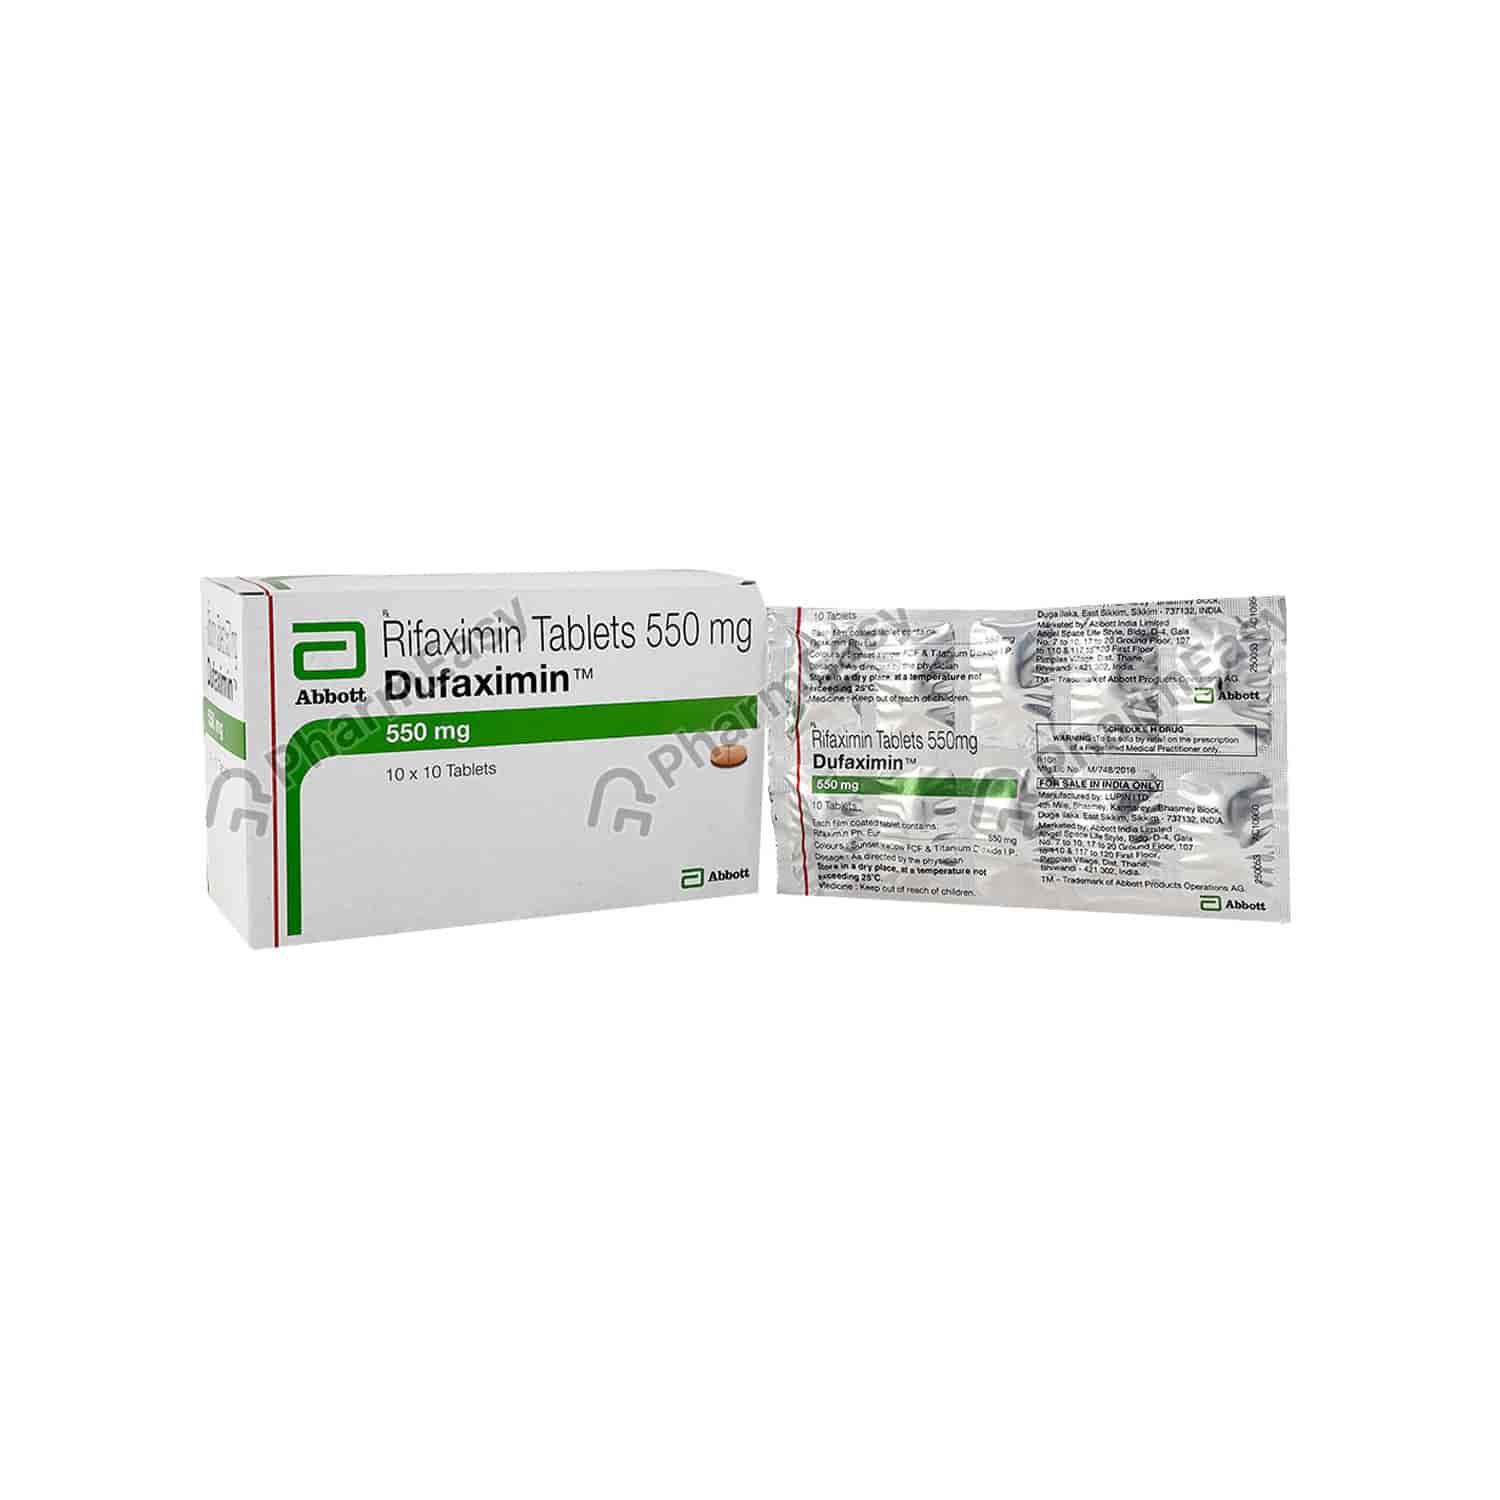 Dufaximin 550mg Tablet